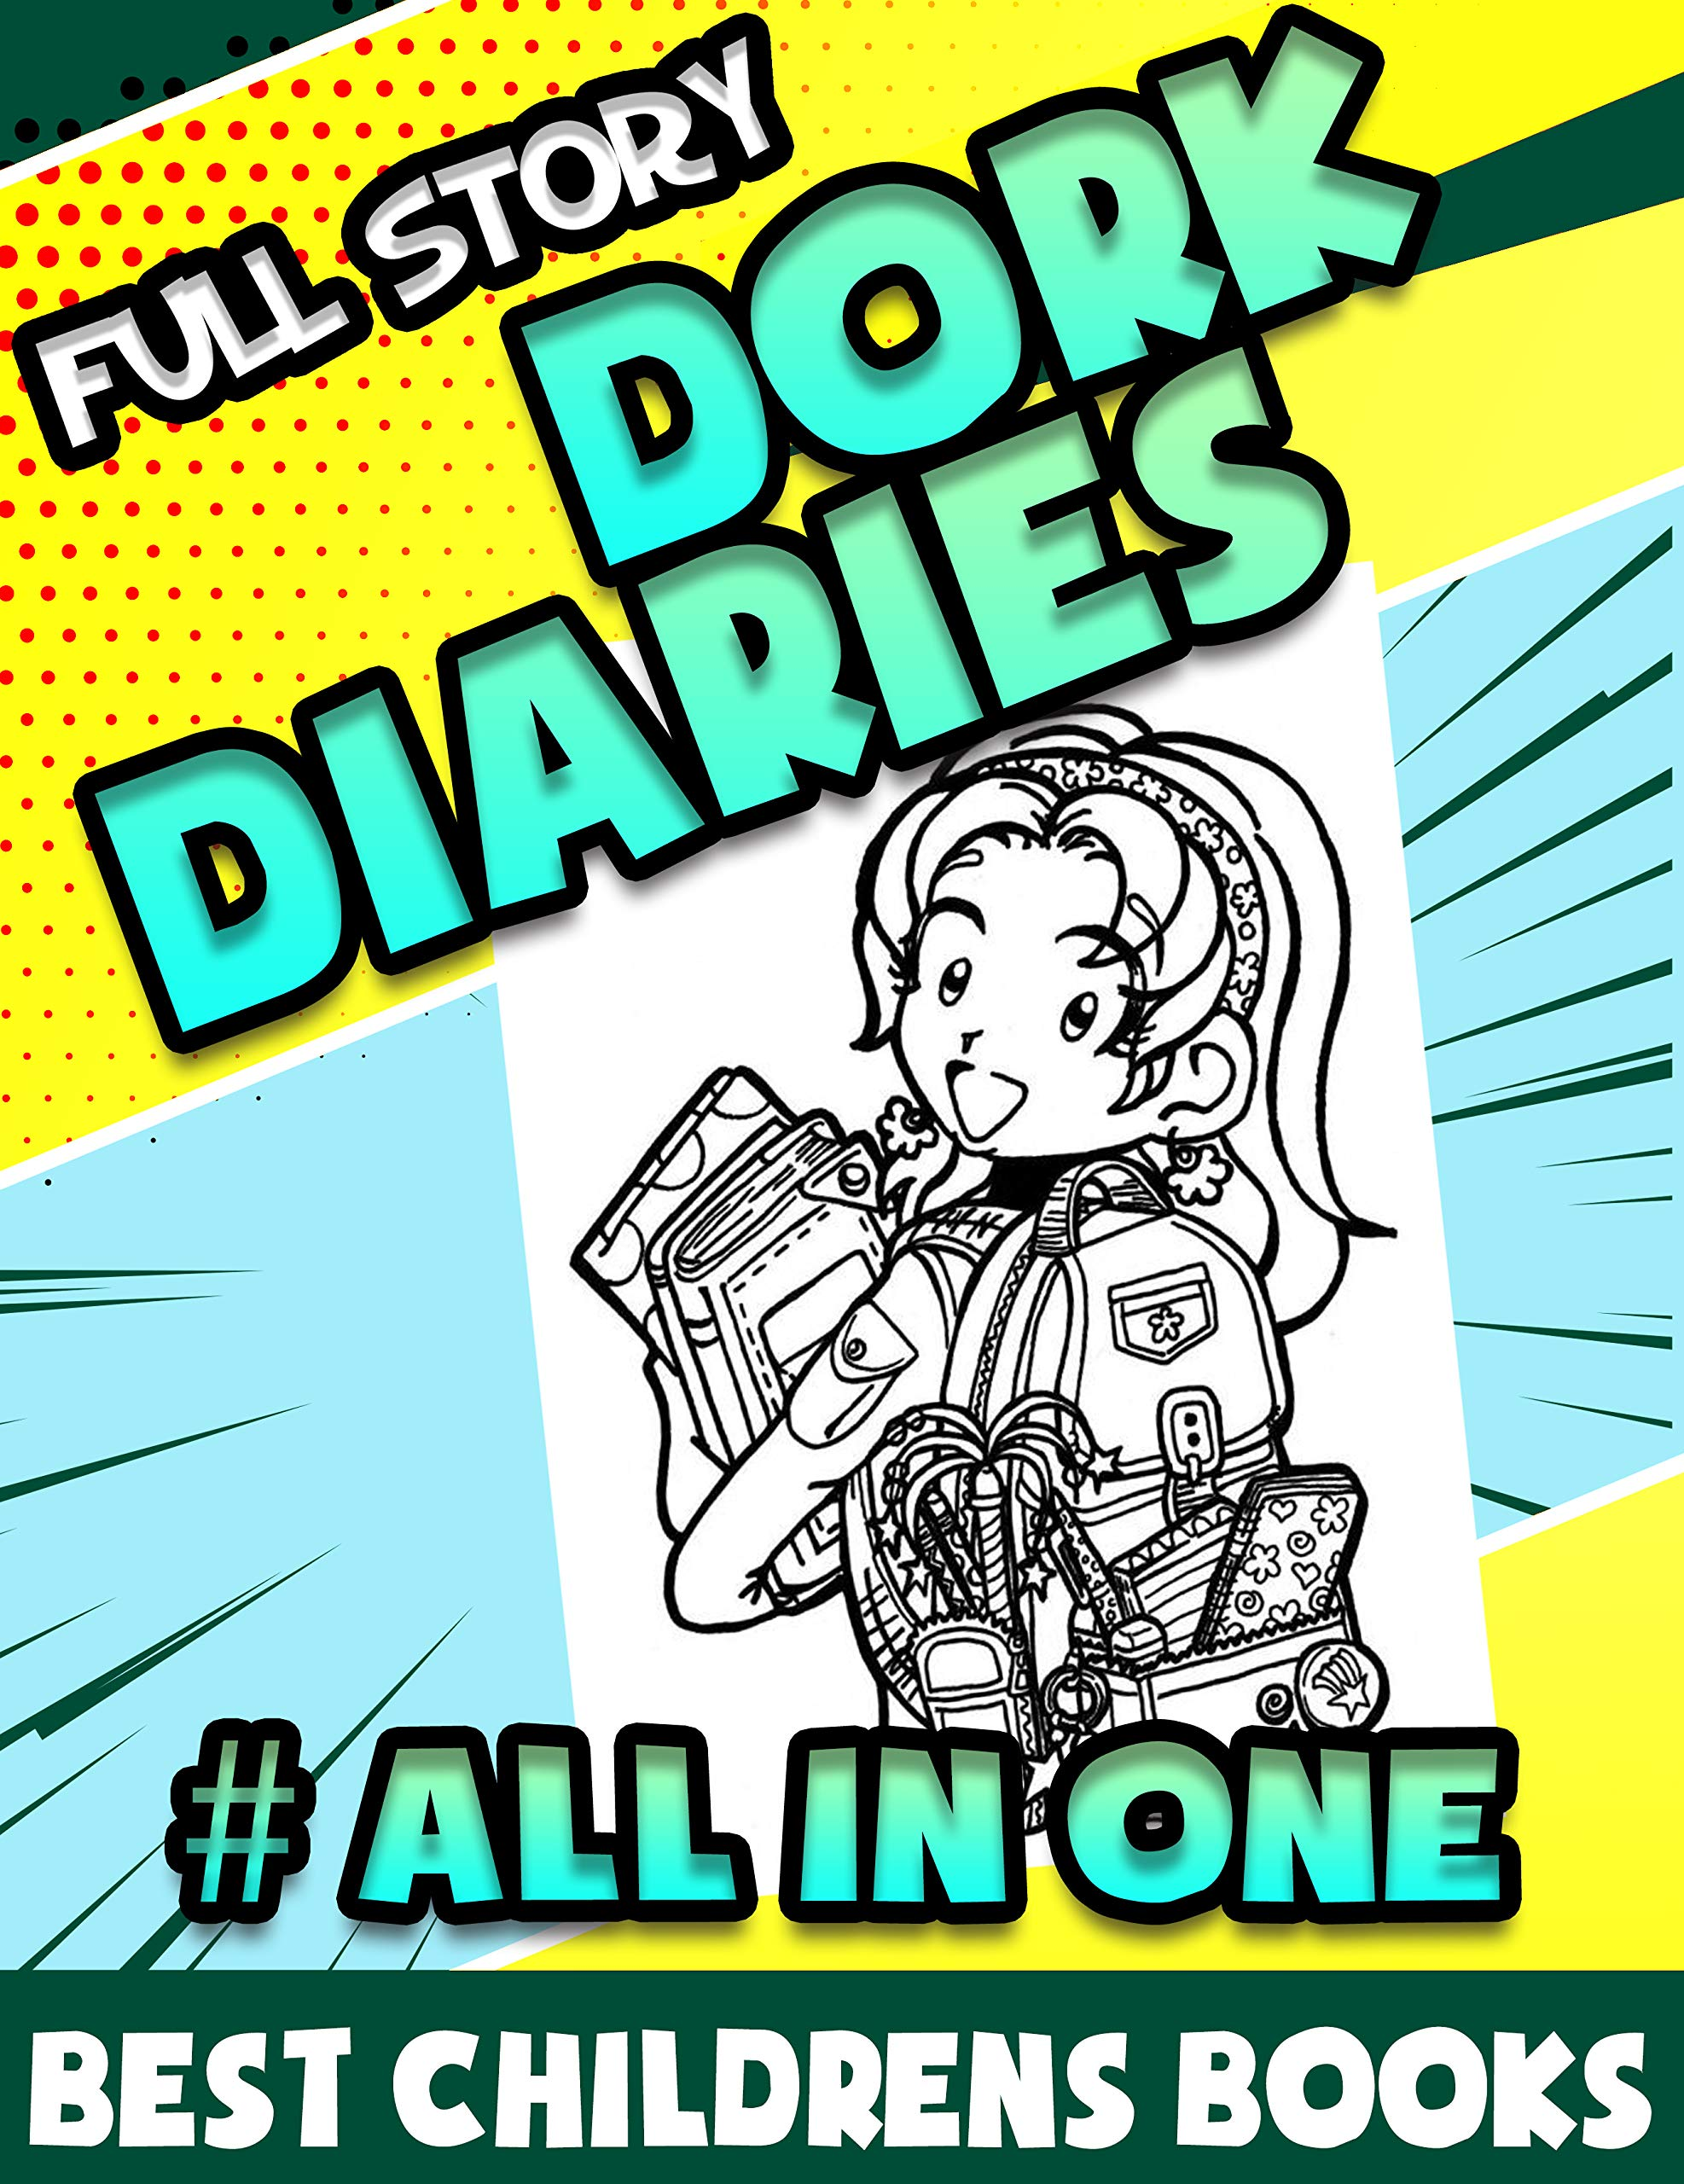 Best Childrens Books Full Story Dork Diaries Limited Edition Completed: Full Dork Diaries All in One Book